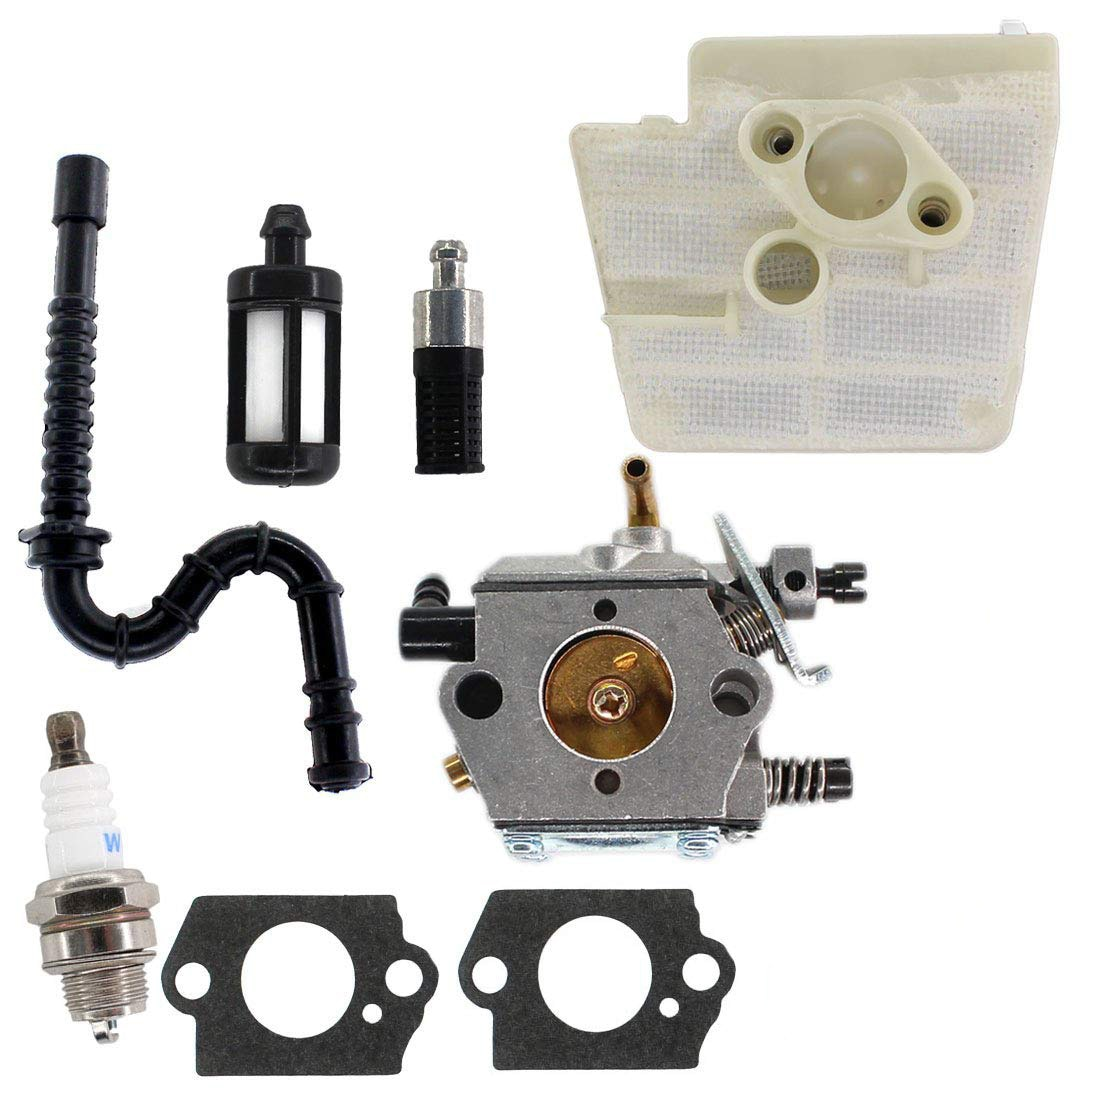 Carburetor For Stihl 024 026 MS240 MS260 240 Walbro WT -194 carb Air Filter